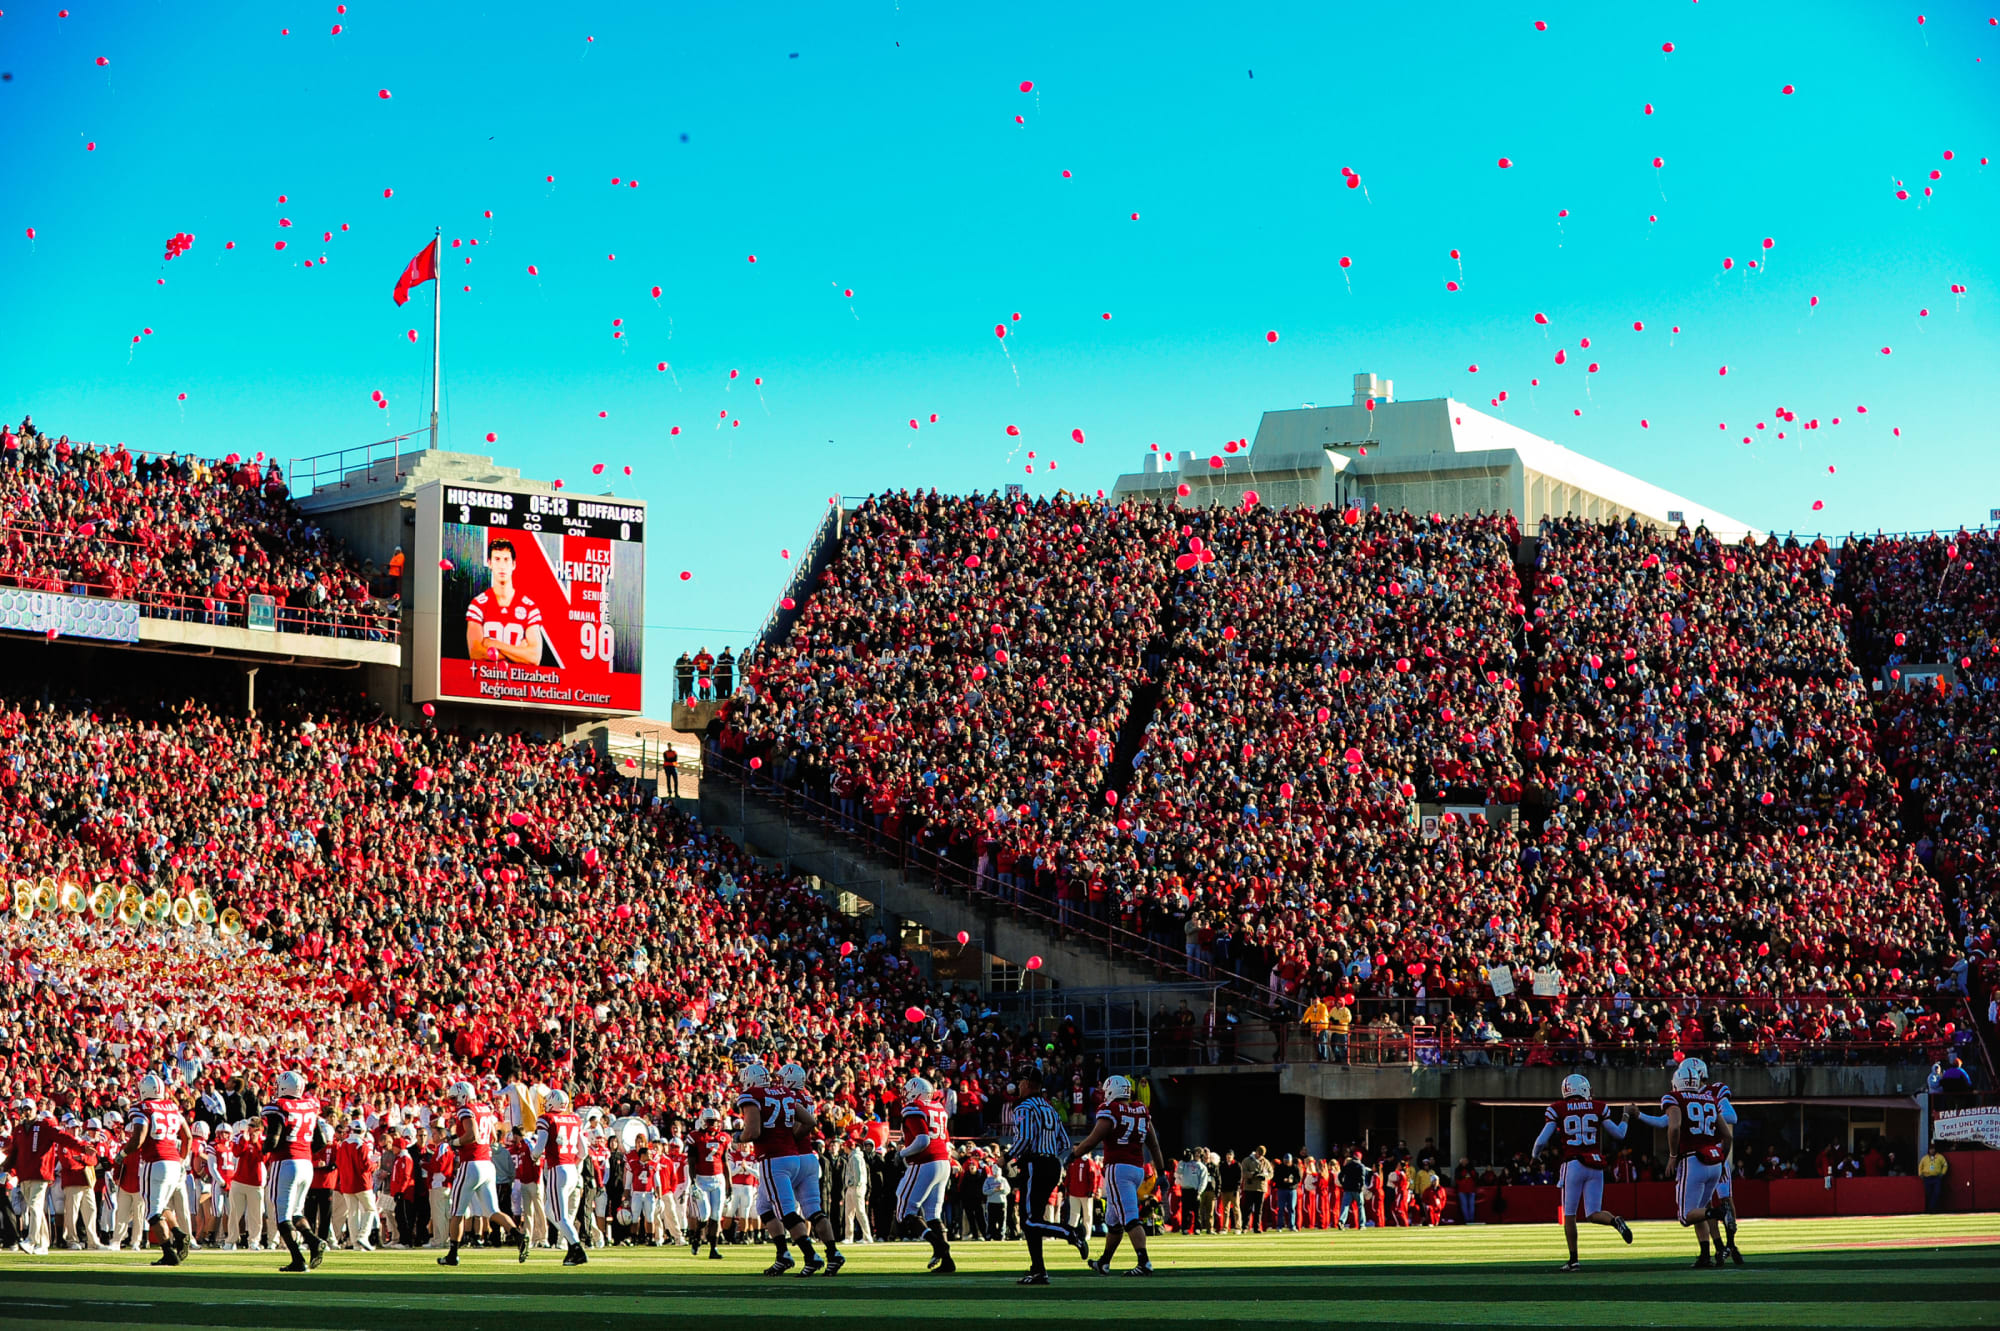 Husker Football Tailgating when the Badgers bail out